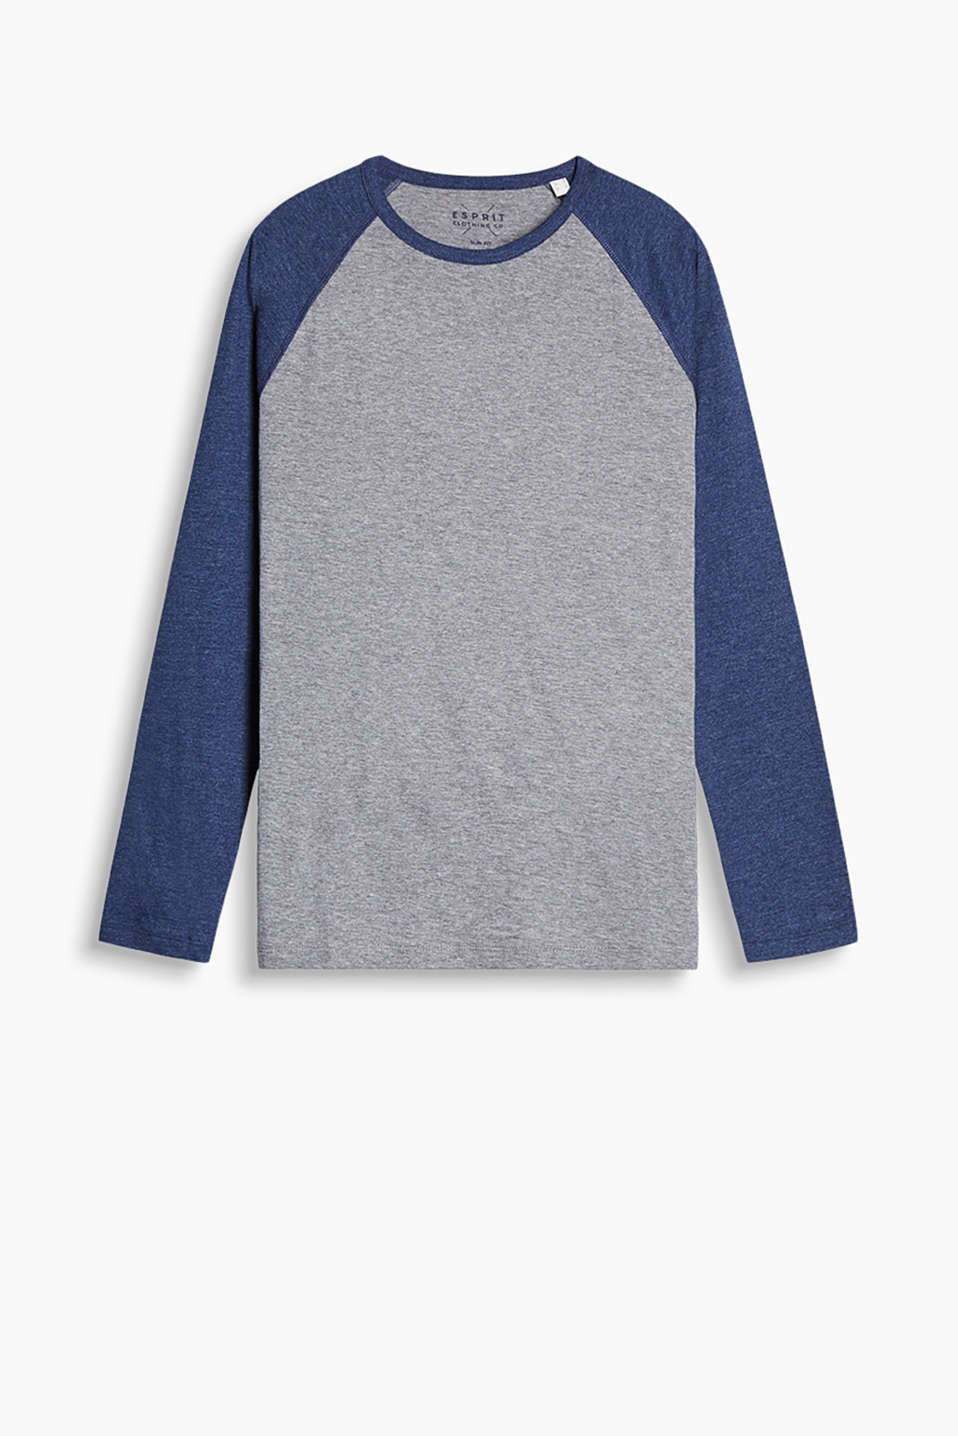 Long sleeve top in soft blended cotton with raglan sleeves